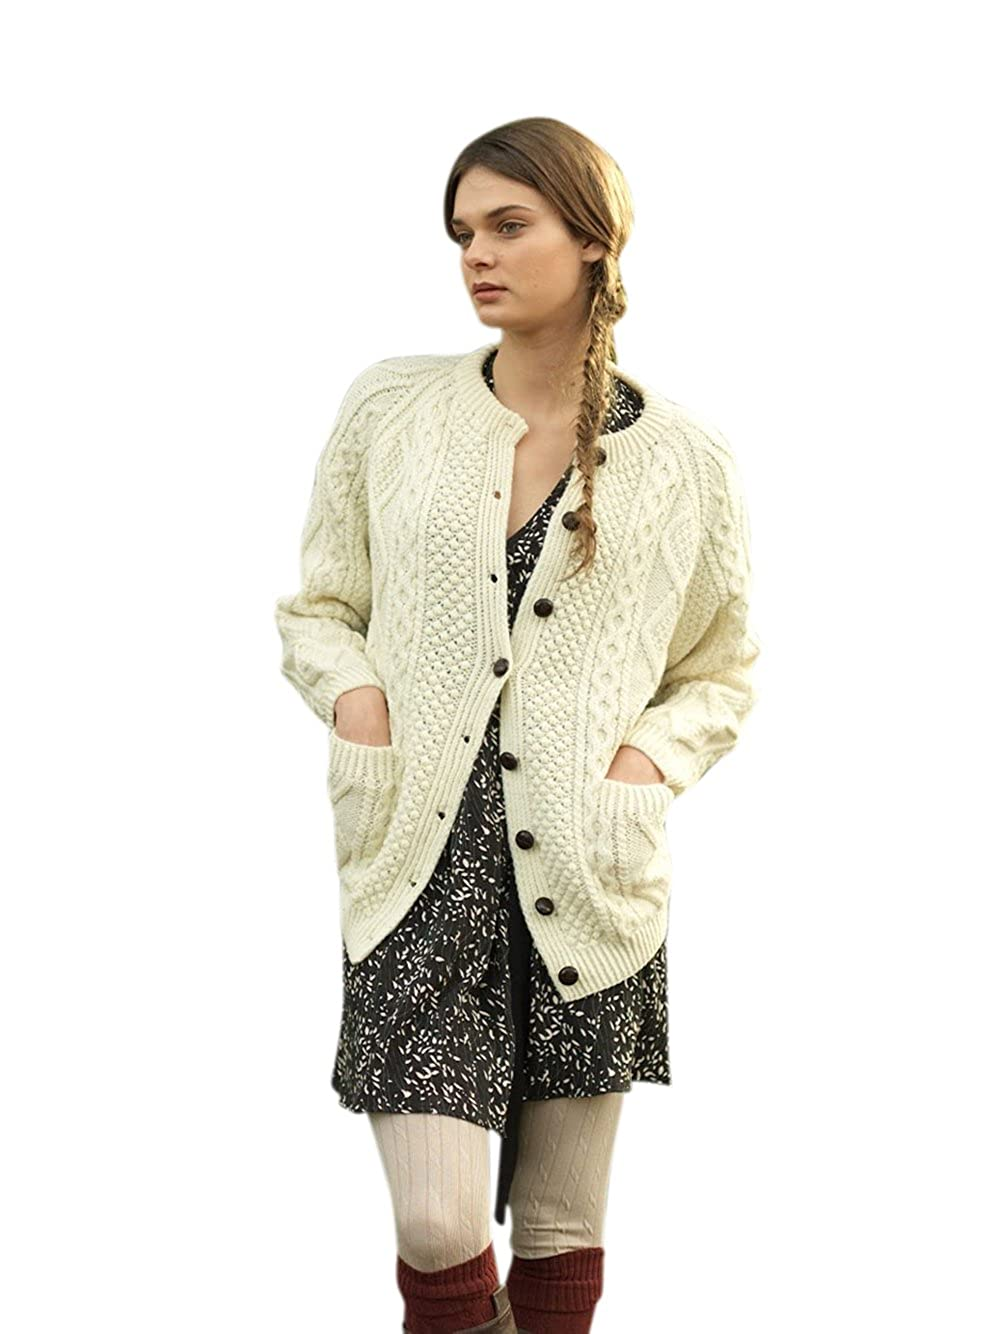 Hand Knit Ladies irlandesa Aran Cardigan: Amazon.es: Ropa y accesorios